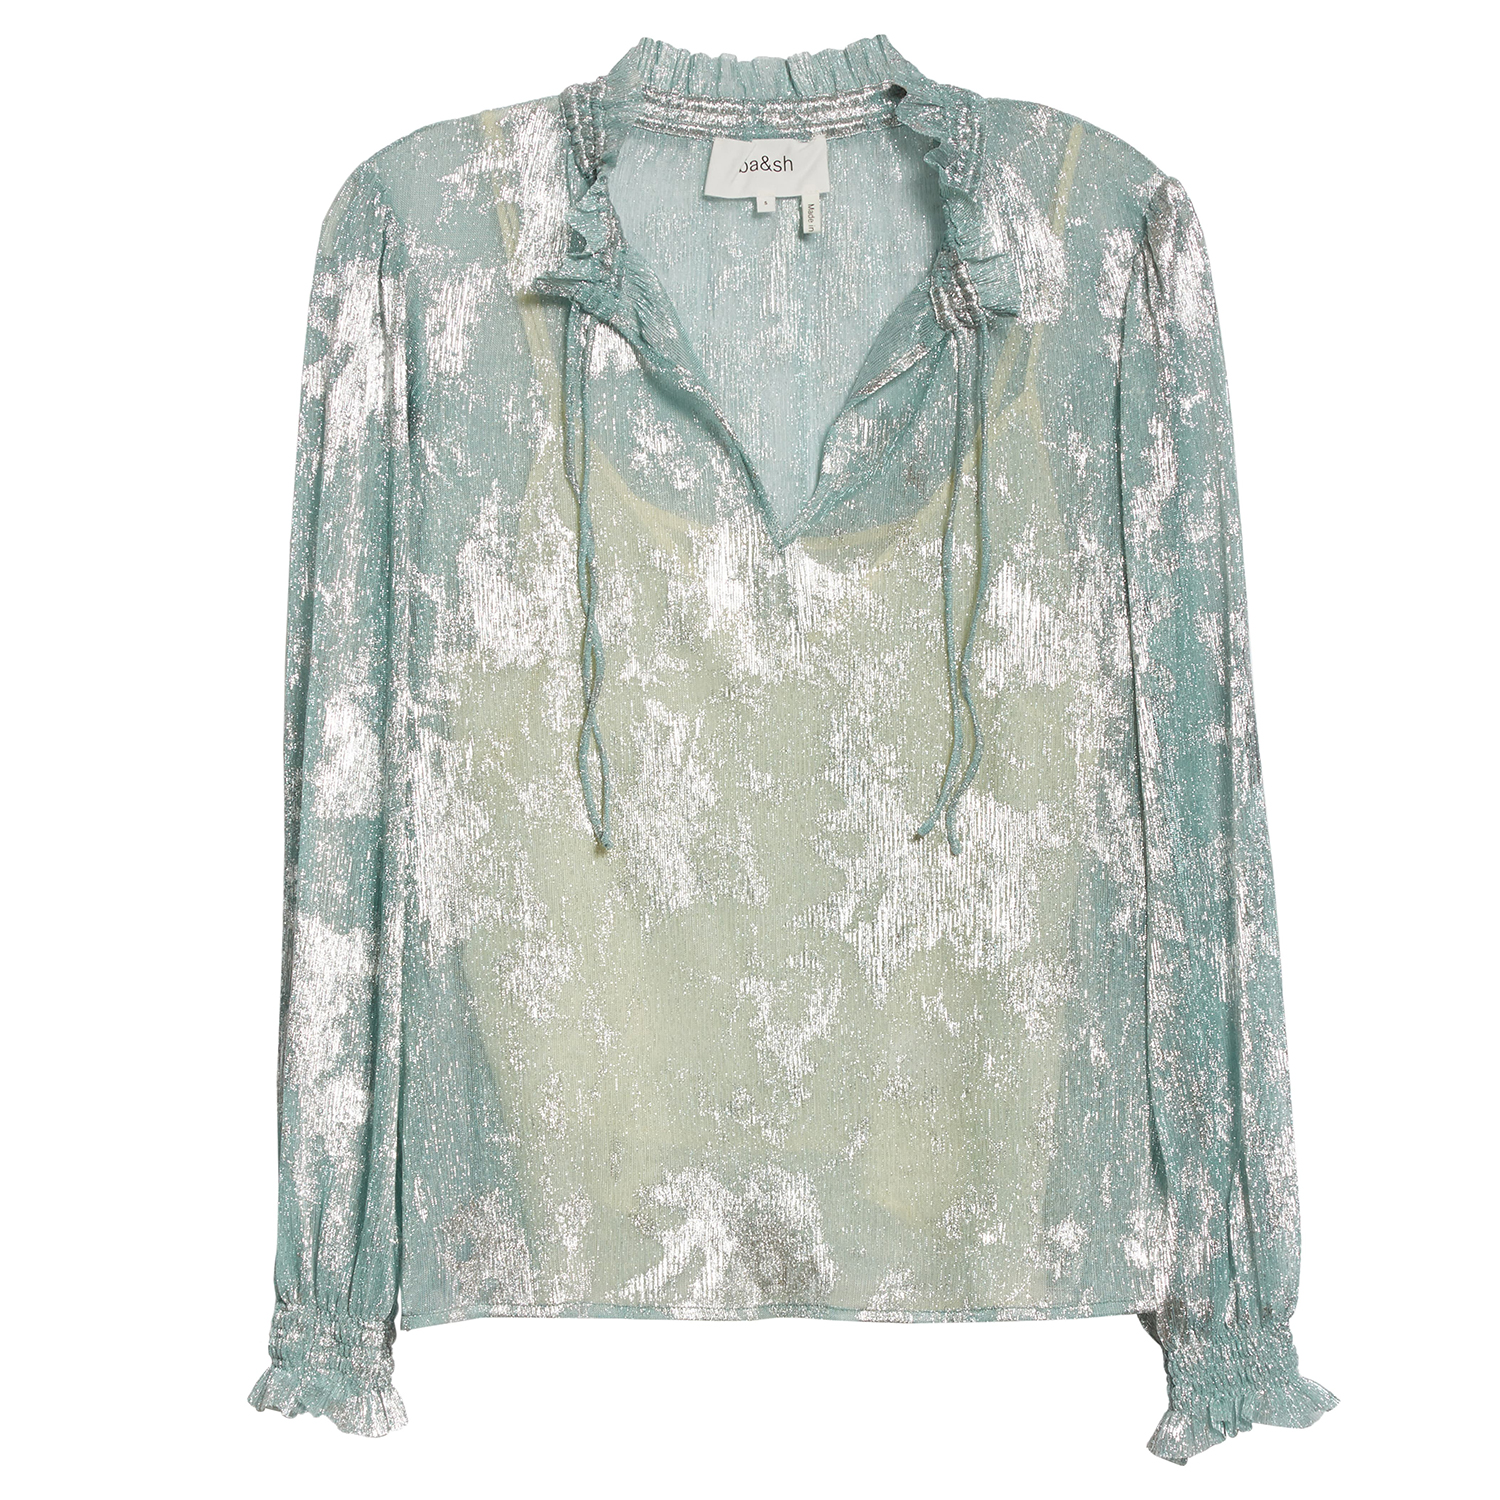 ba&sh Stana Metallic Detail Long Sleeve Blouse